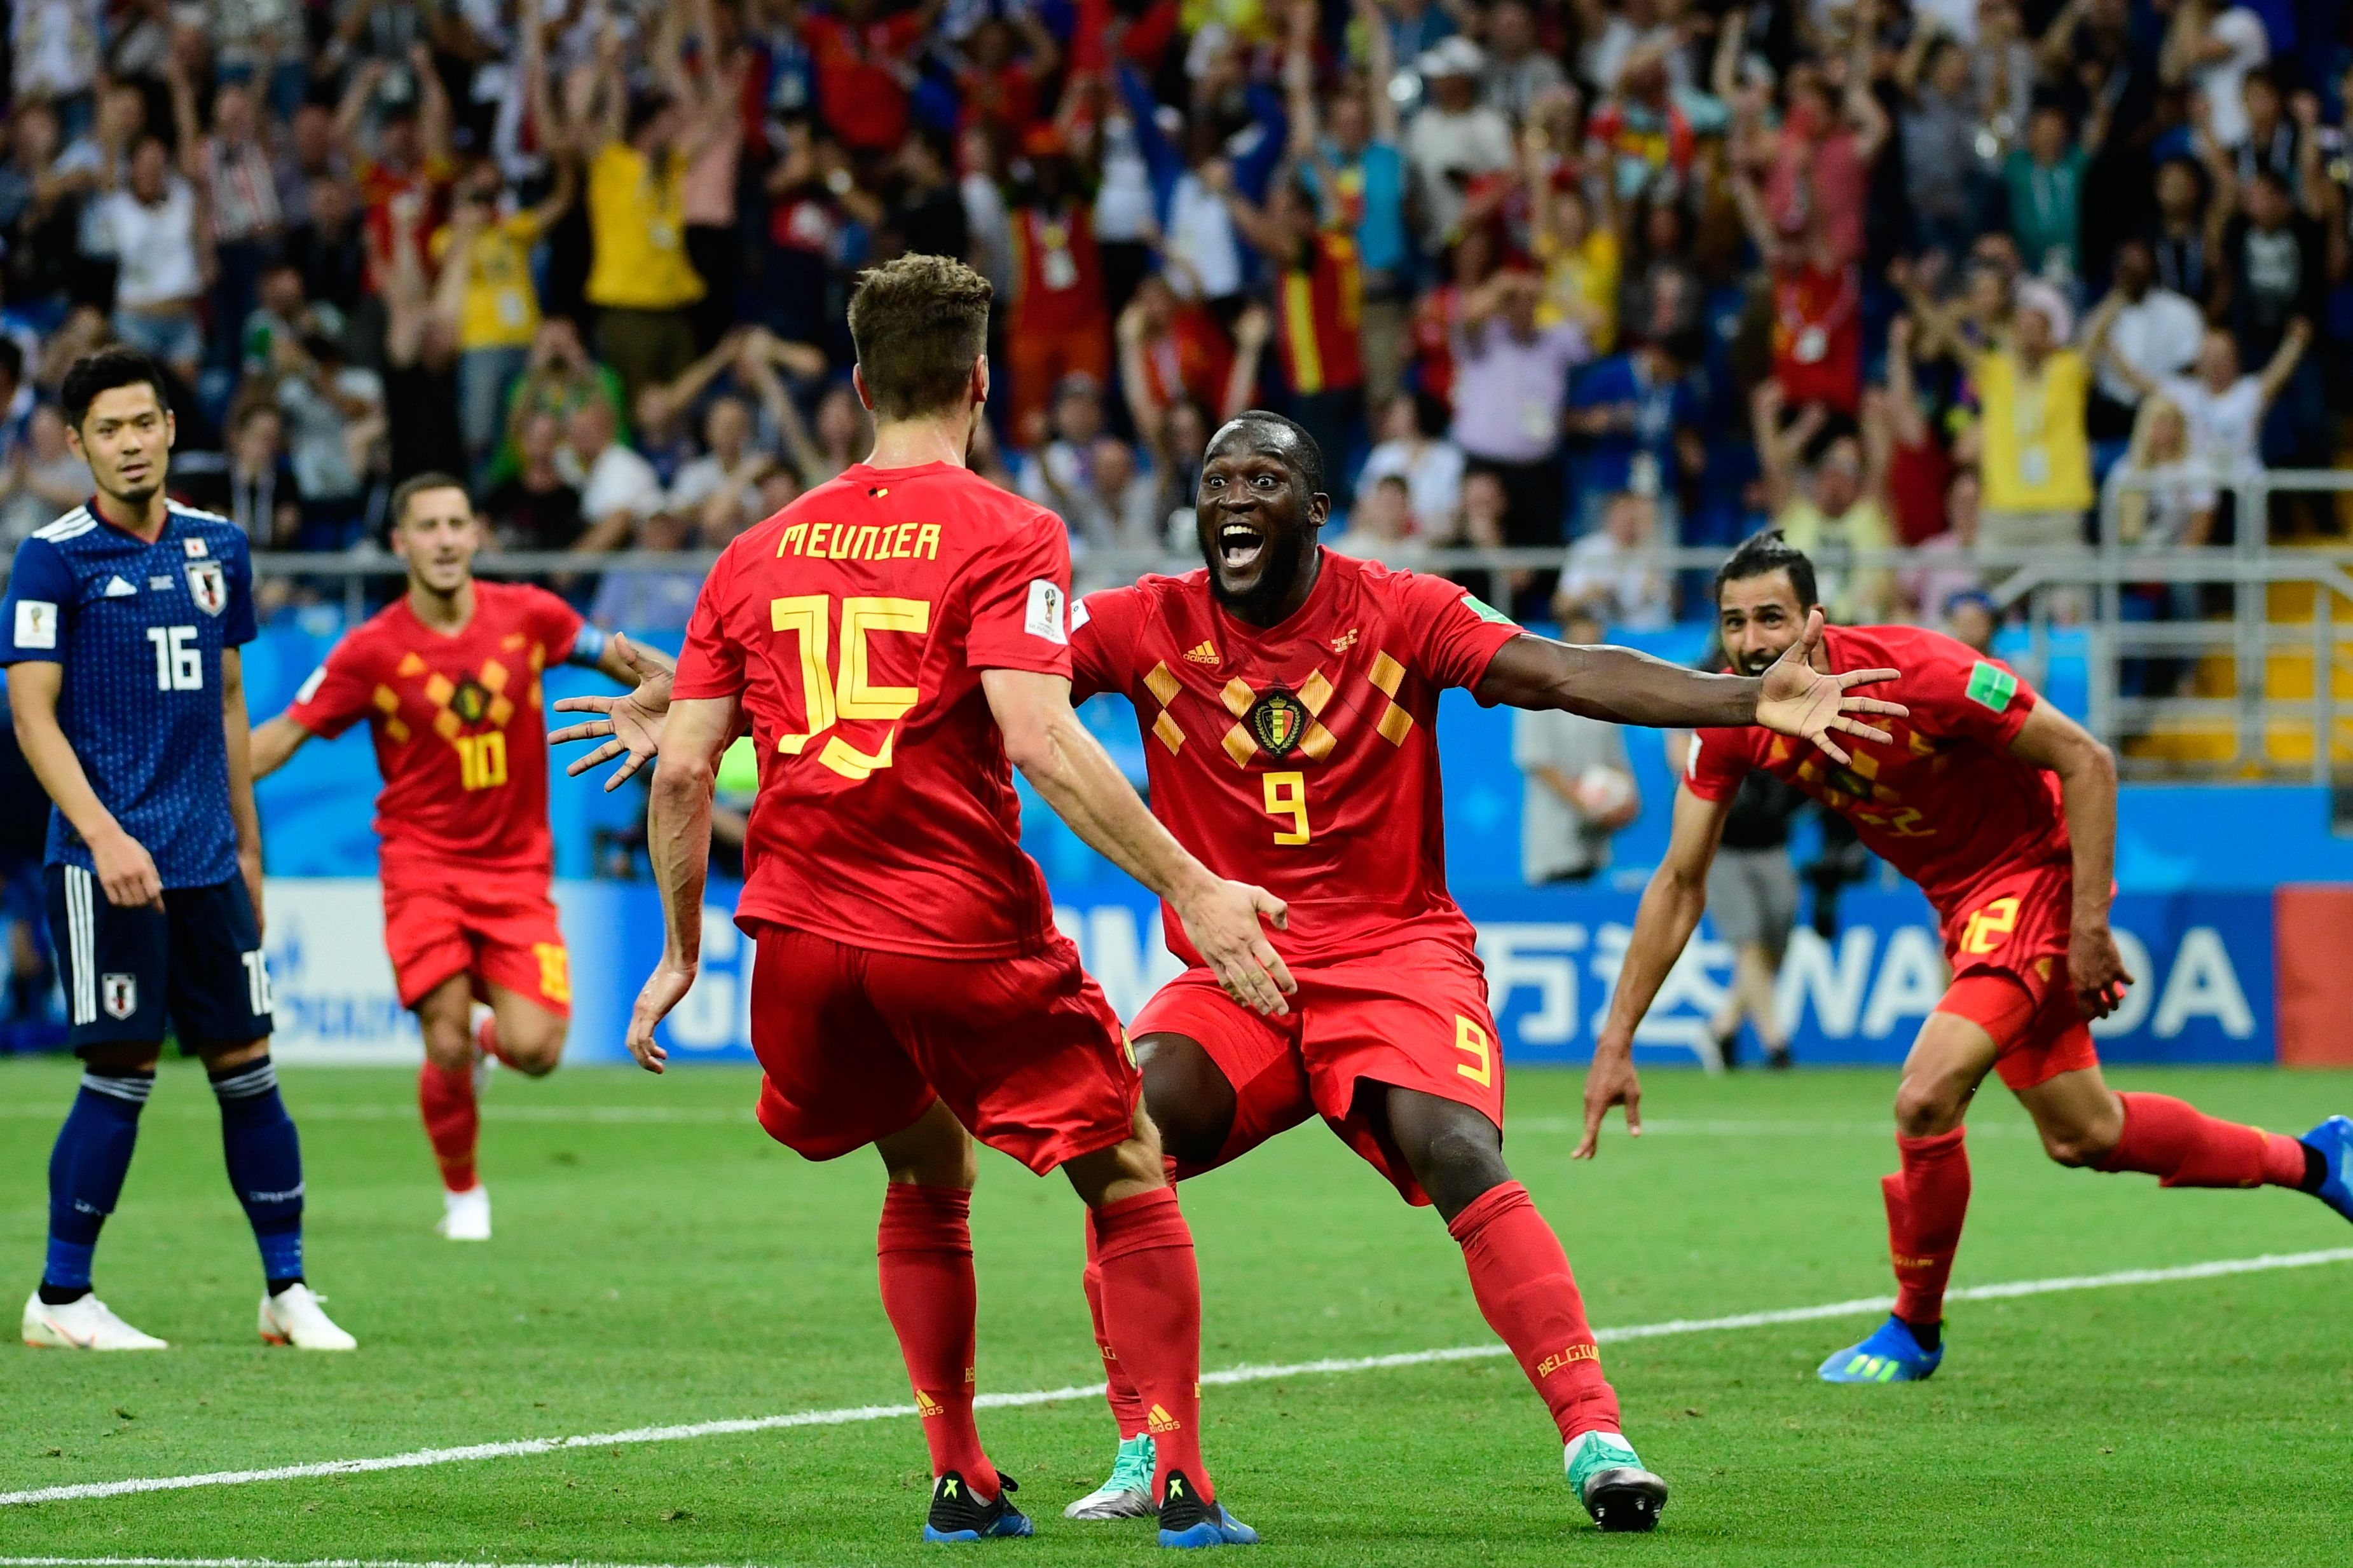 Thomas Meunier Romelu Lukaku Nacer Chadli Belgium Japan Goal Celebration World Cup 07/02/18